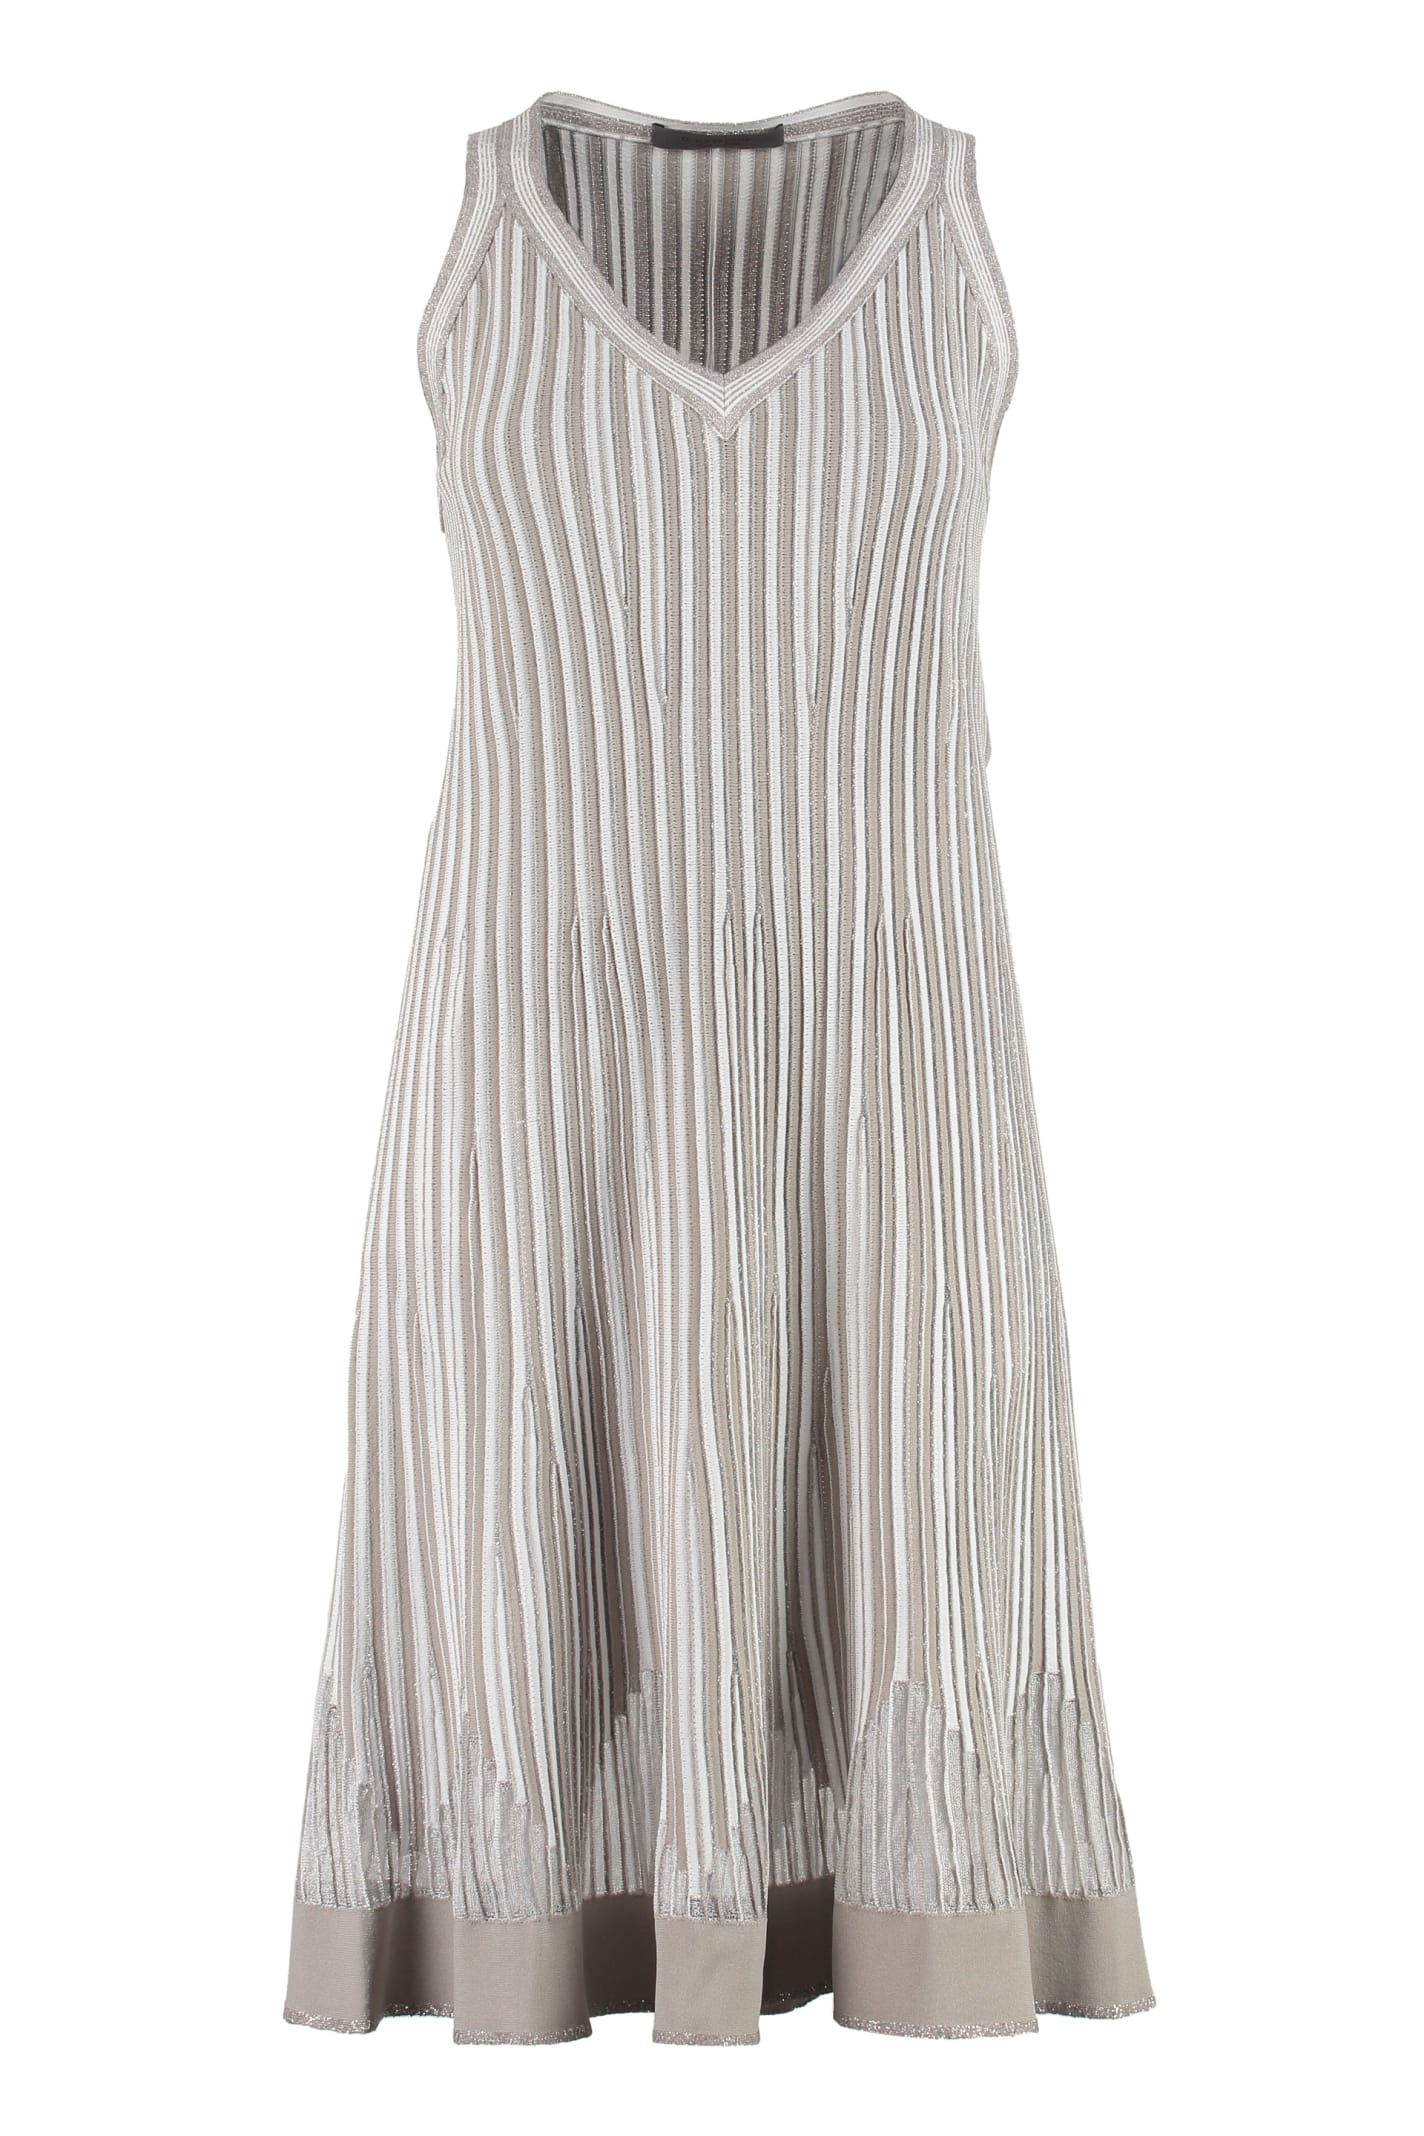 D.Exterior Lurex Knitted Dress With Chevron Pattern